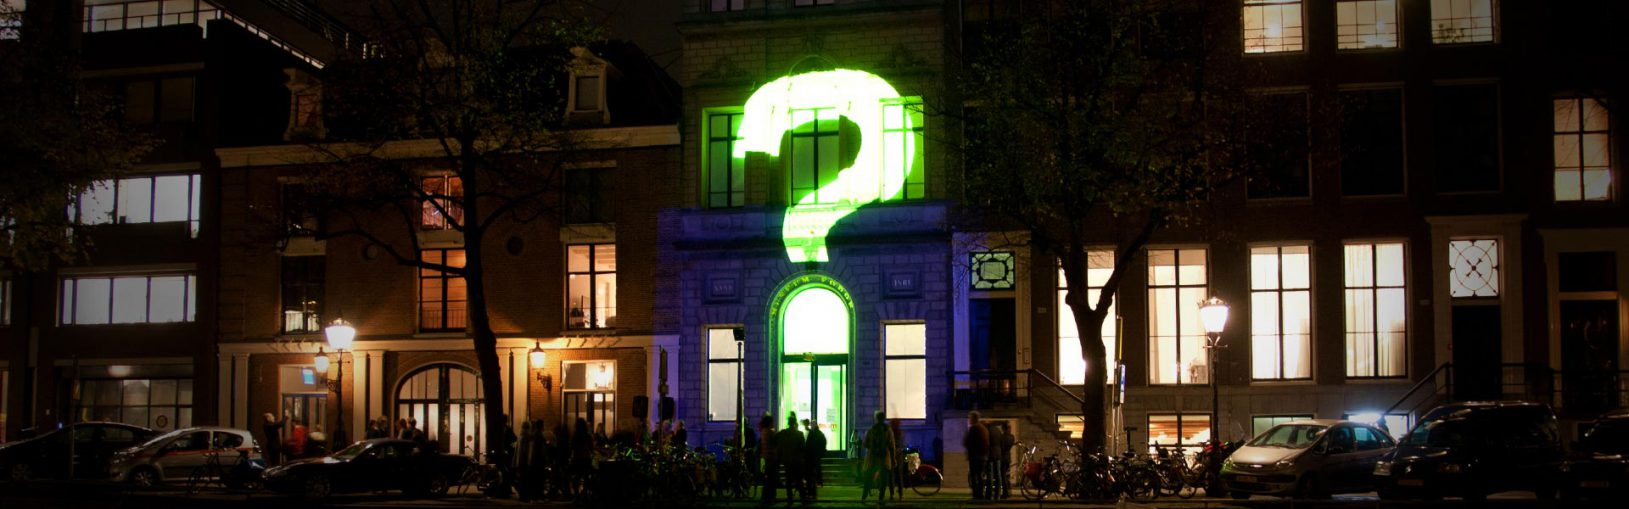 A still from the projection mapping show created by Mr.Beam studio for FOAM Amsterdam